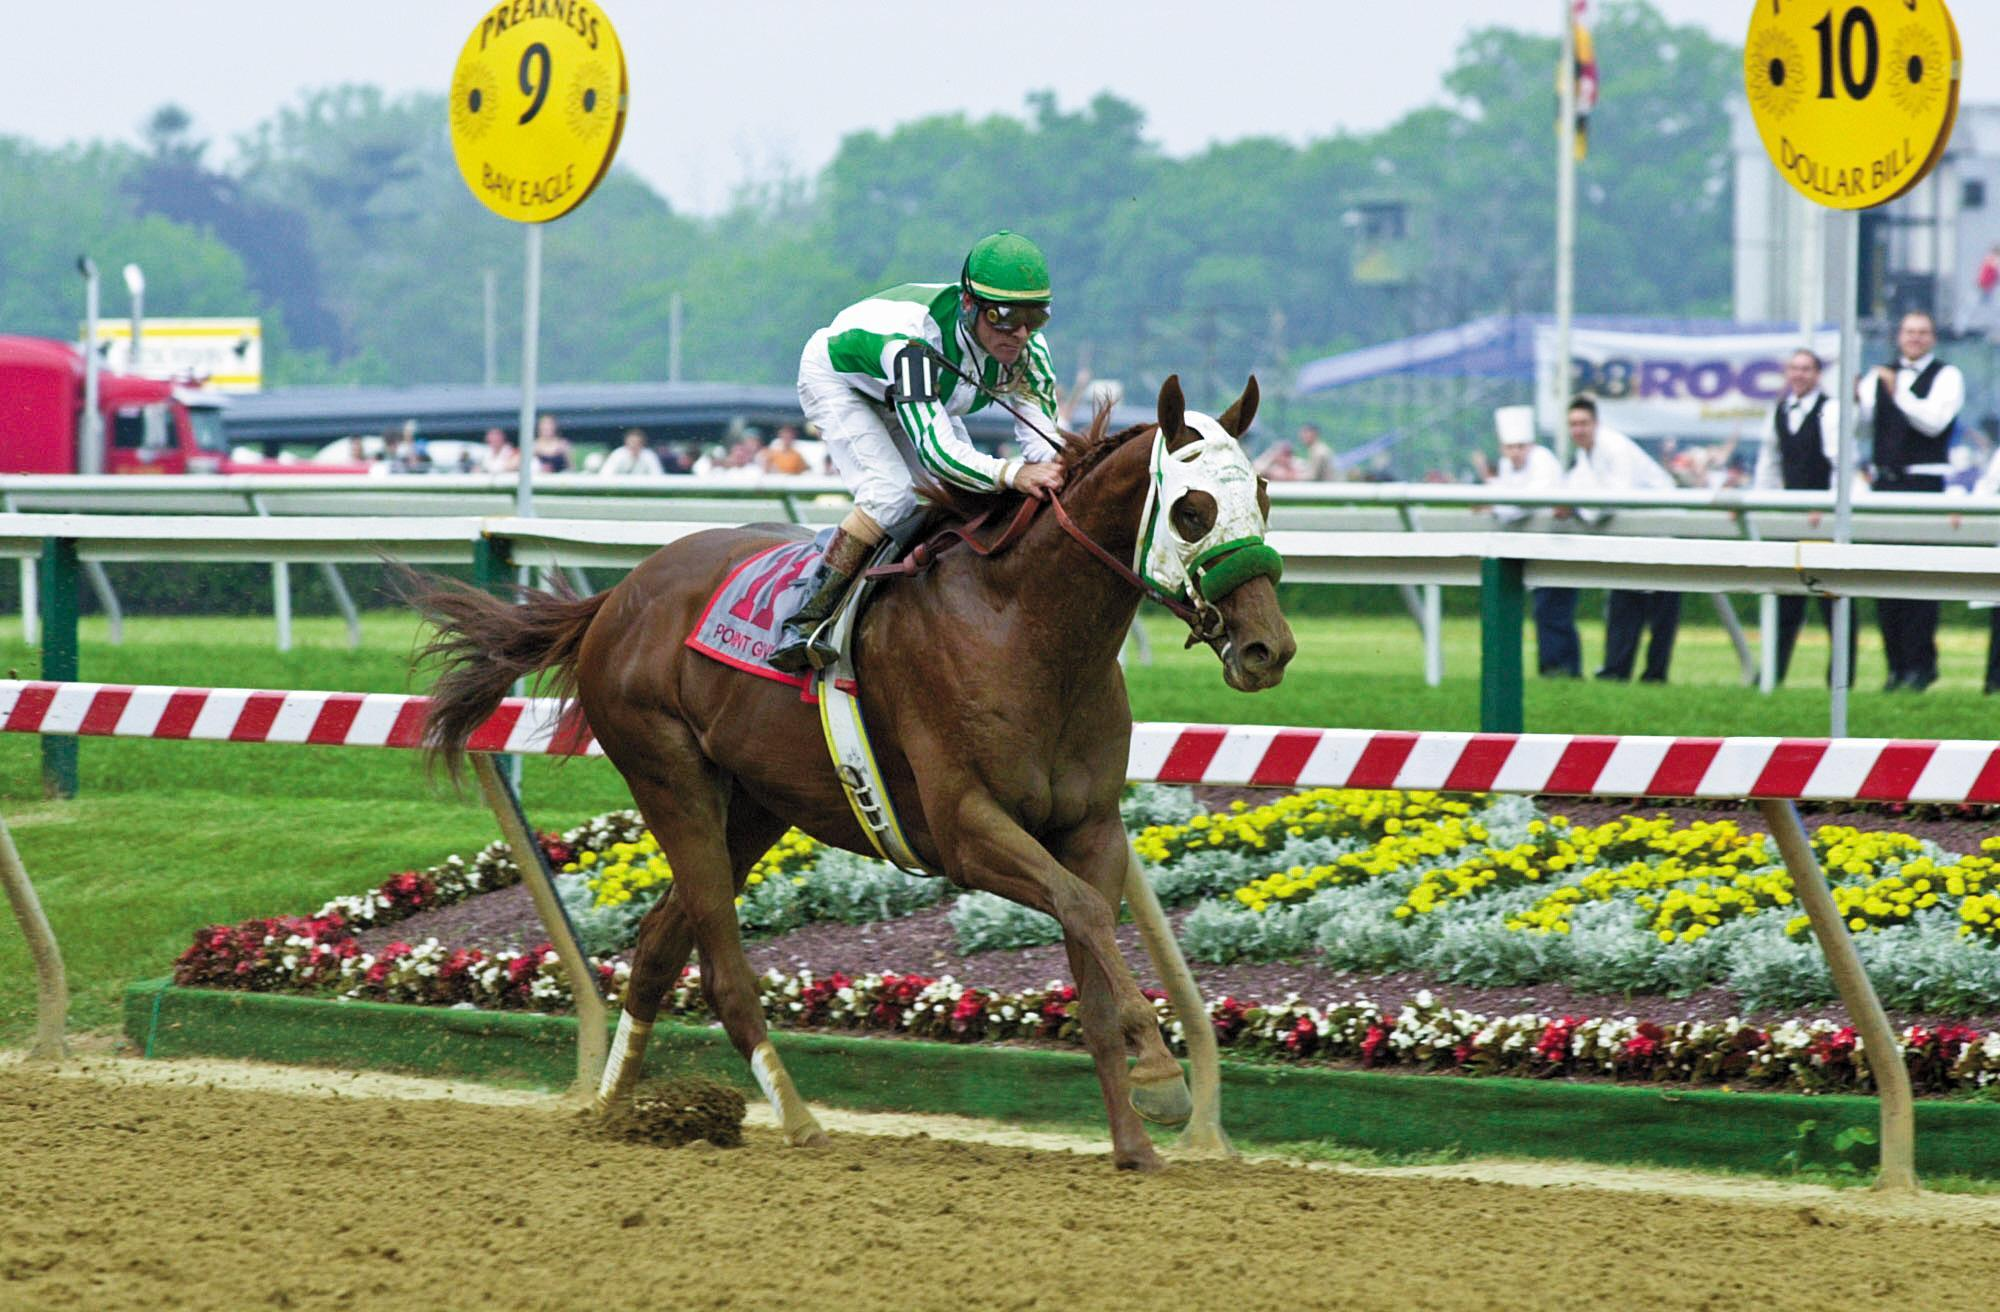 Hall of Famer Point Given Headed to Kentucky Horse Park | America's